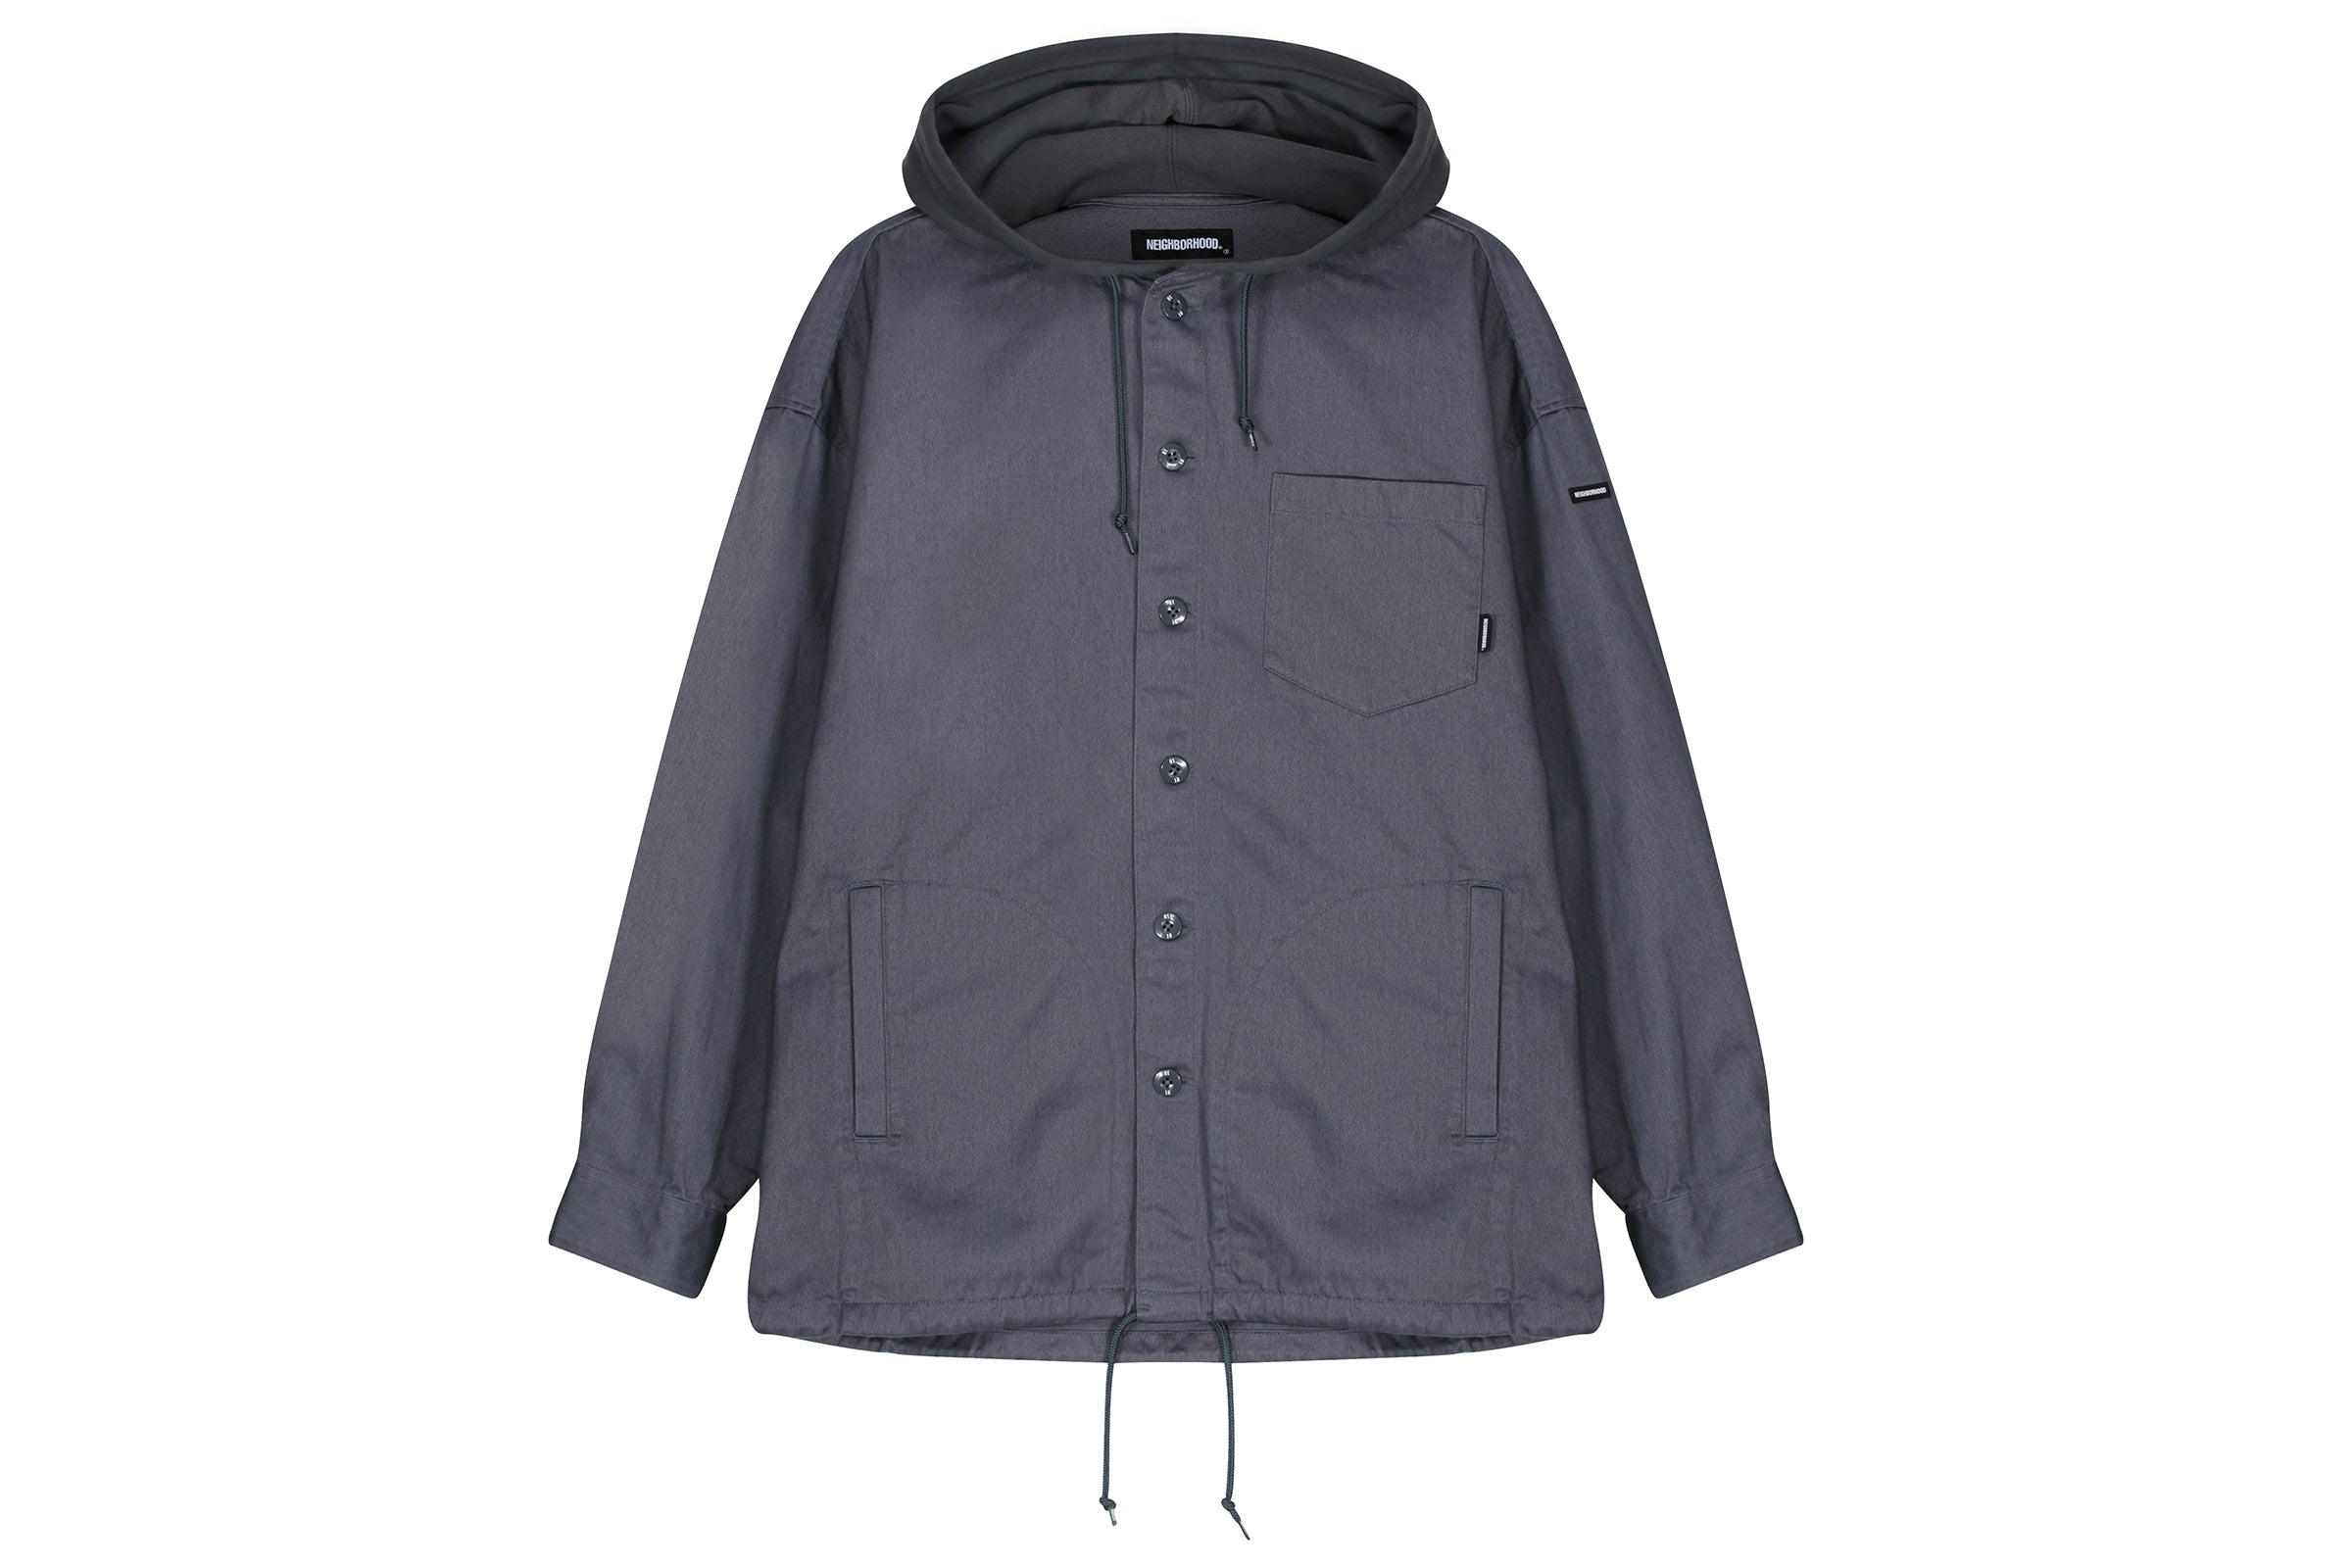 Neighborhood LS Hooded Shirt